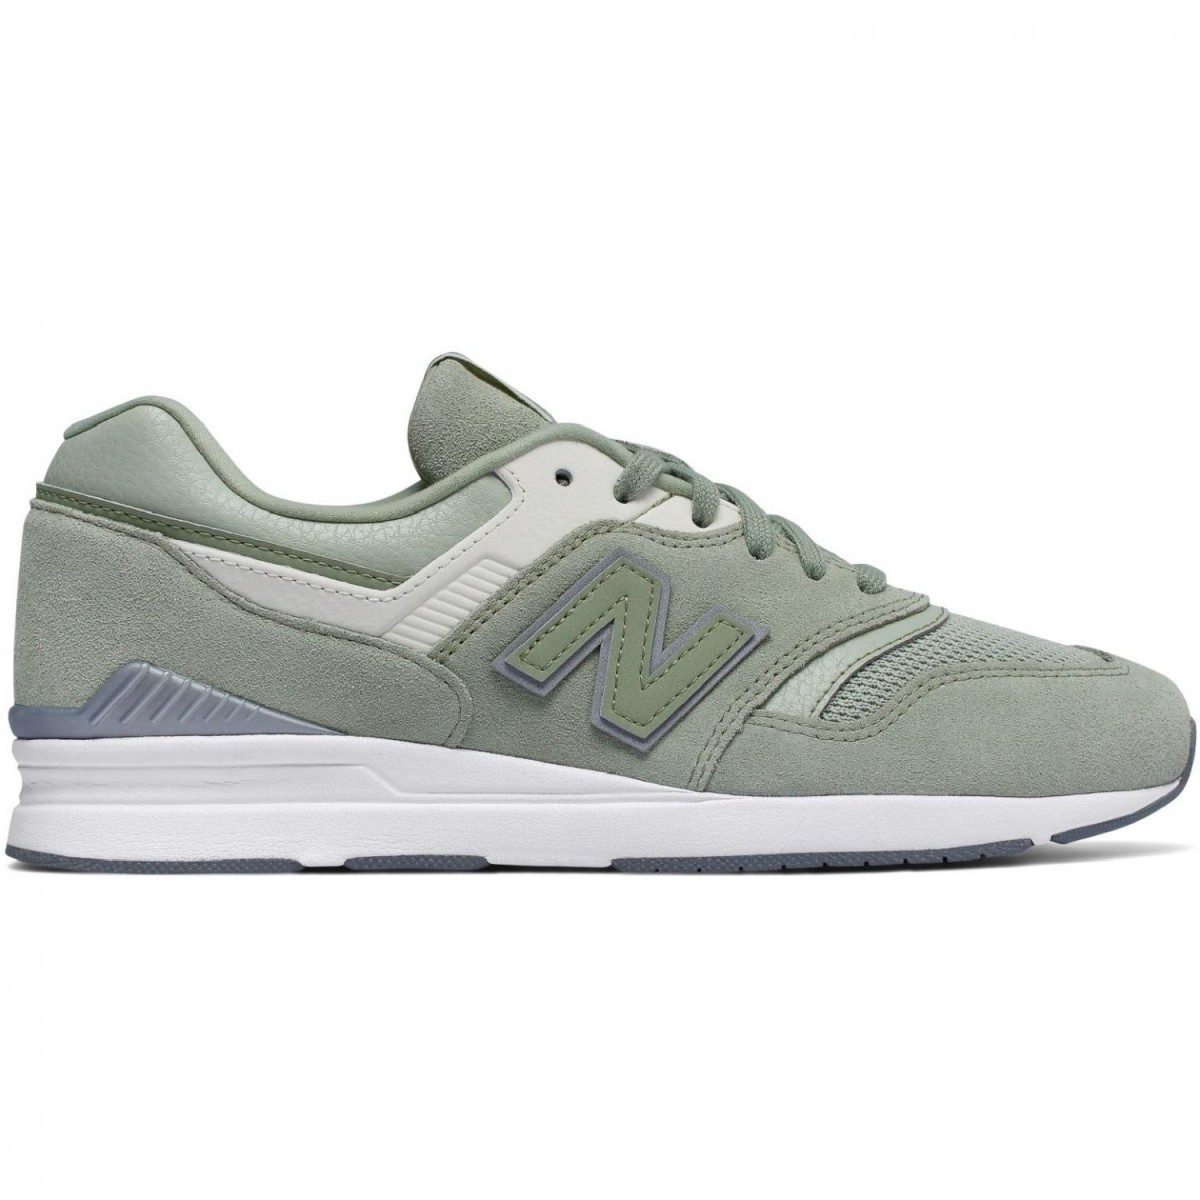 New Balance Leather WL 697 Sneaker